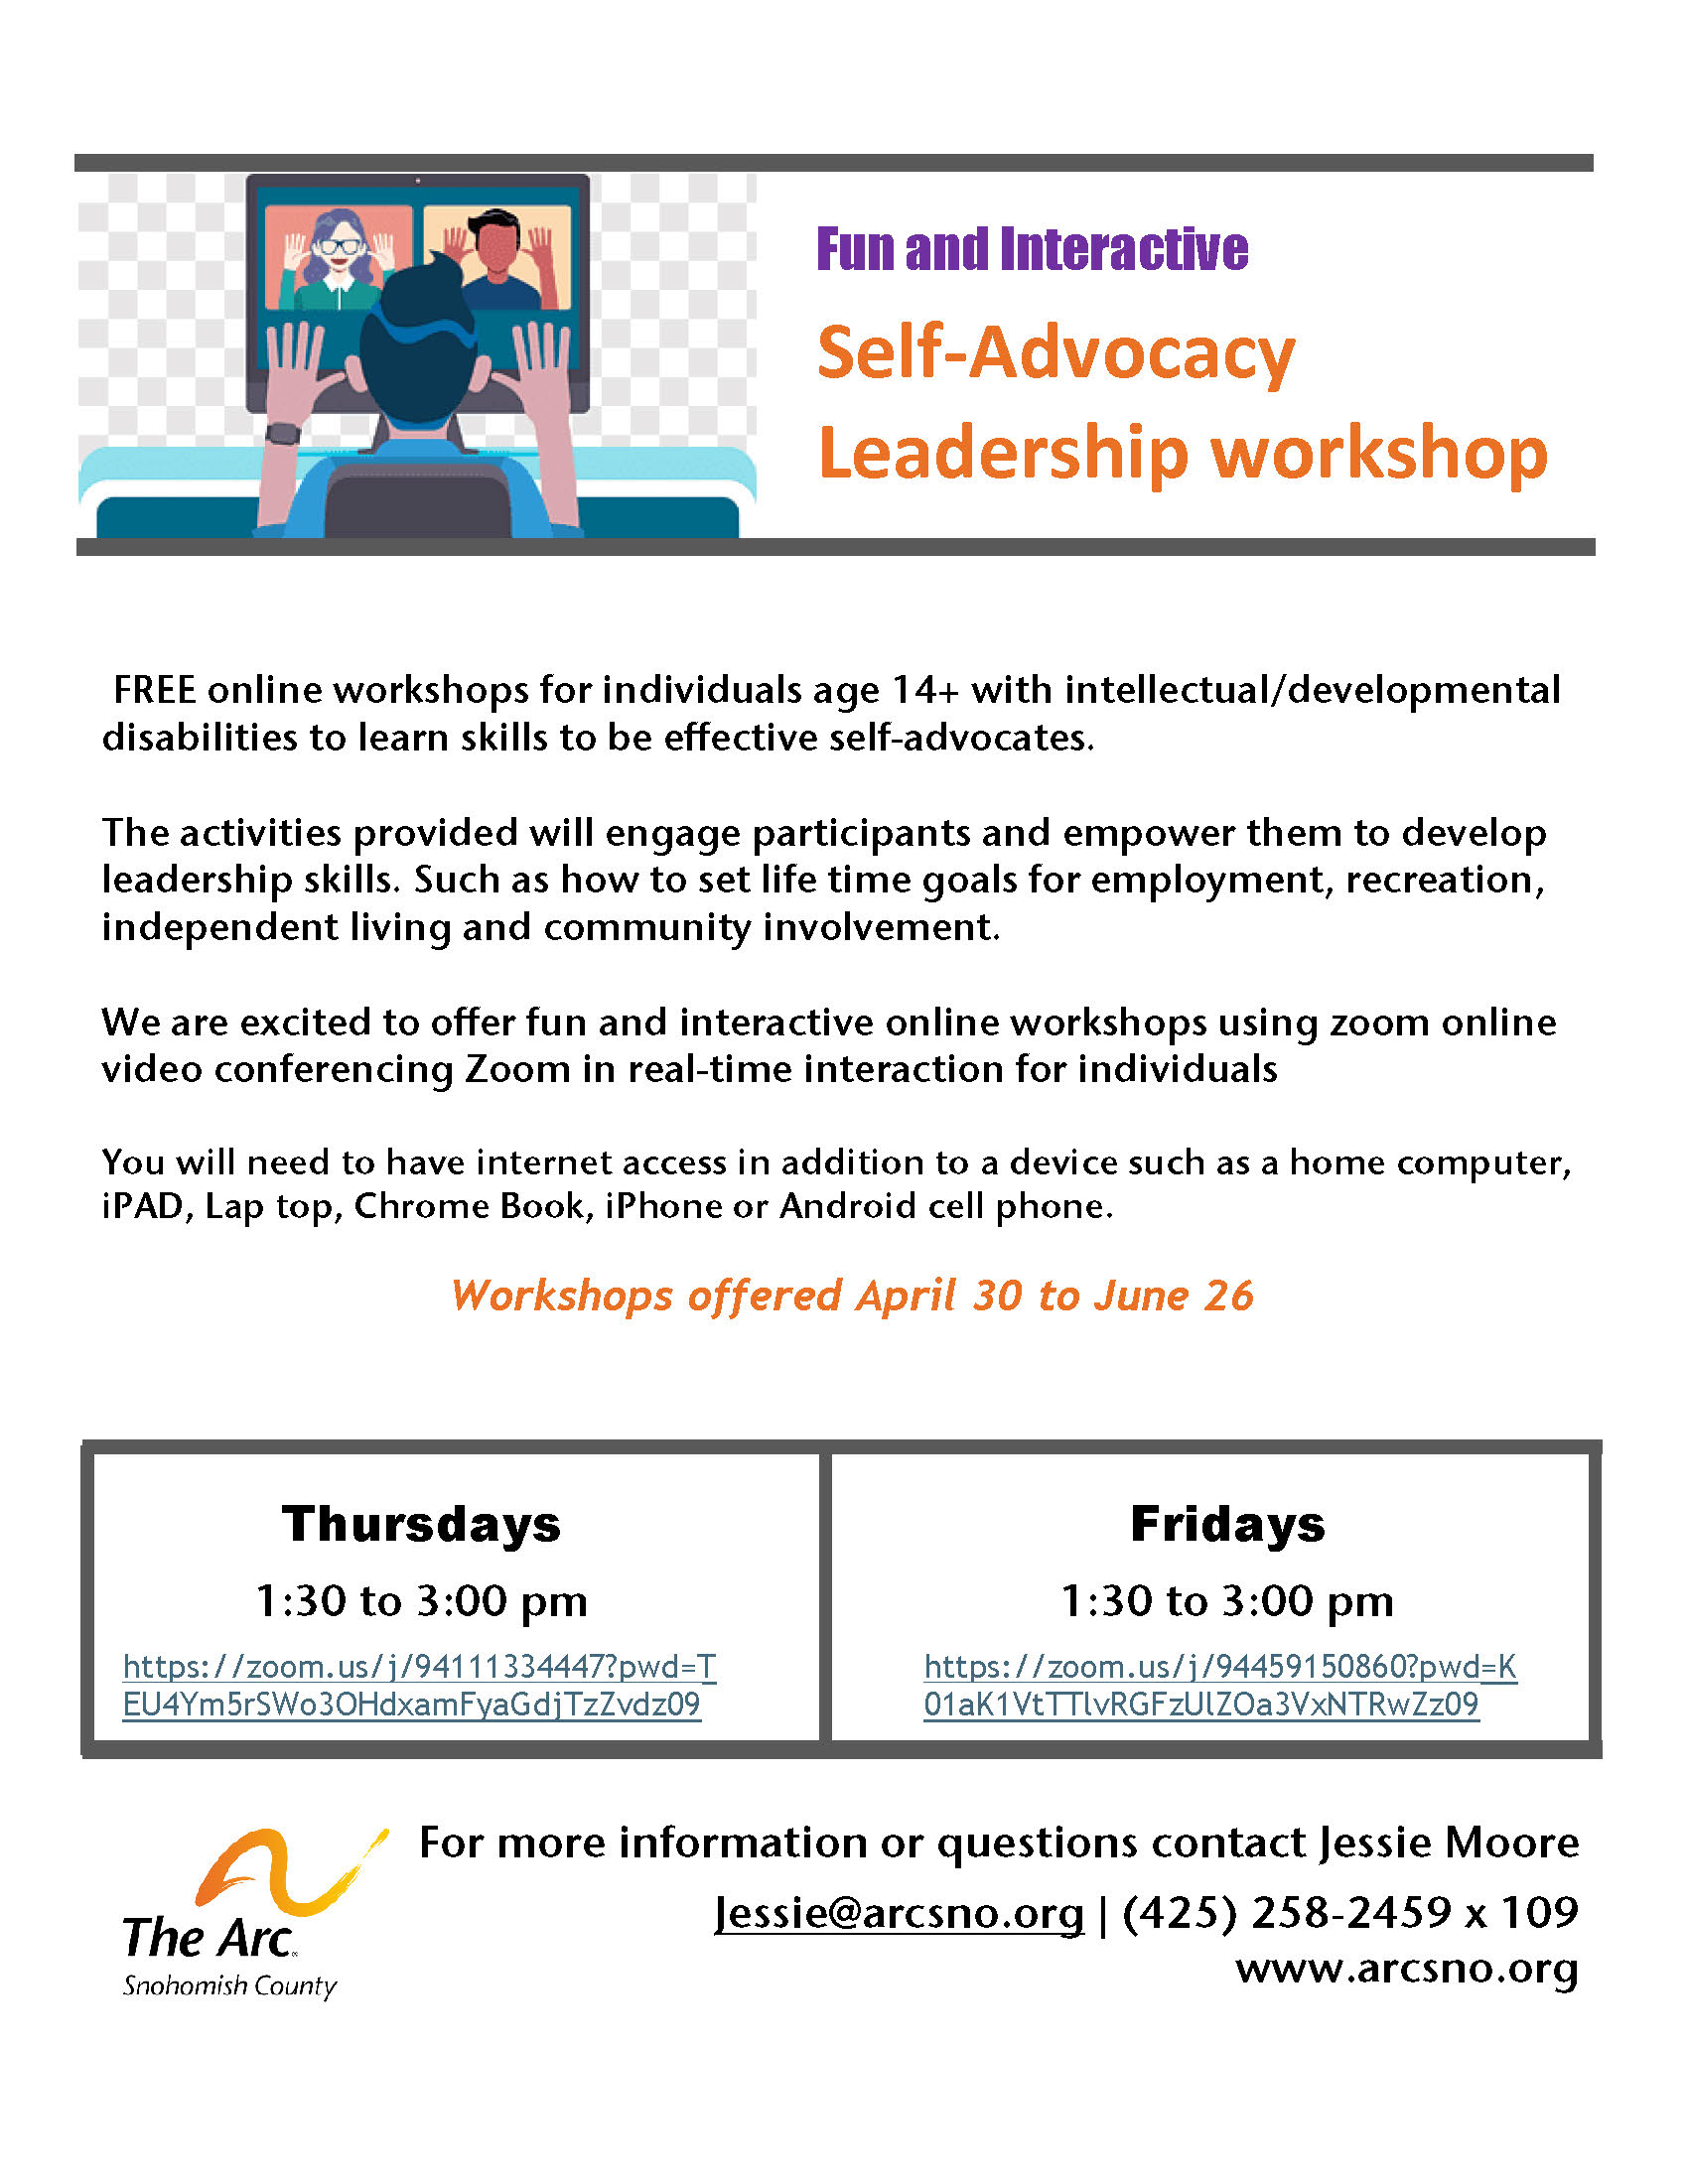 Self Advocacy online workshops Apr 30 to June 26